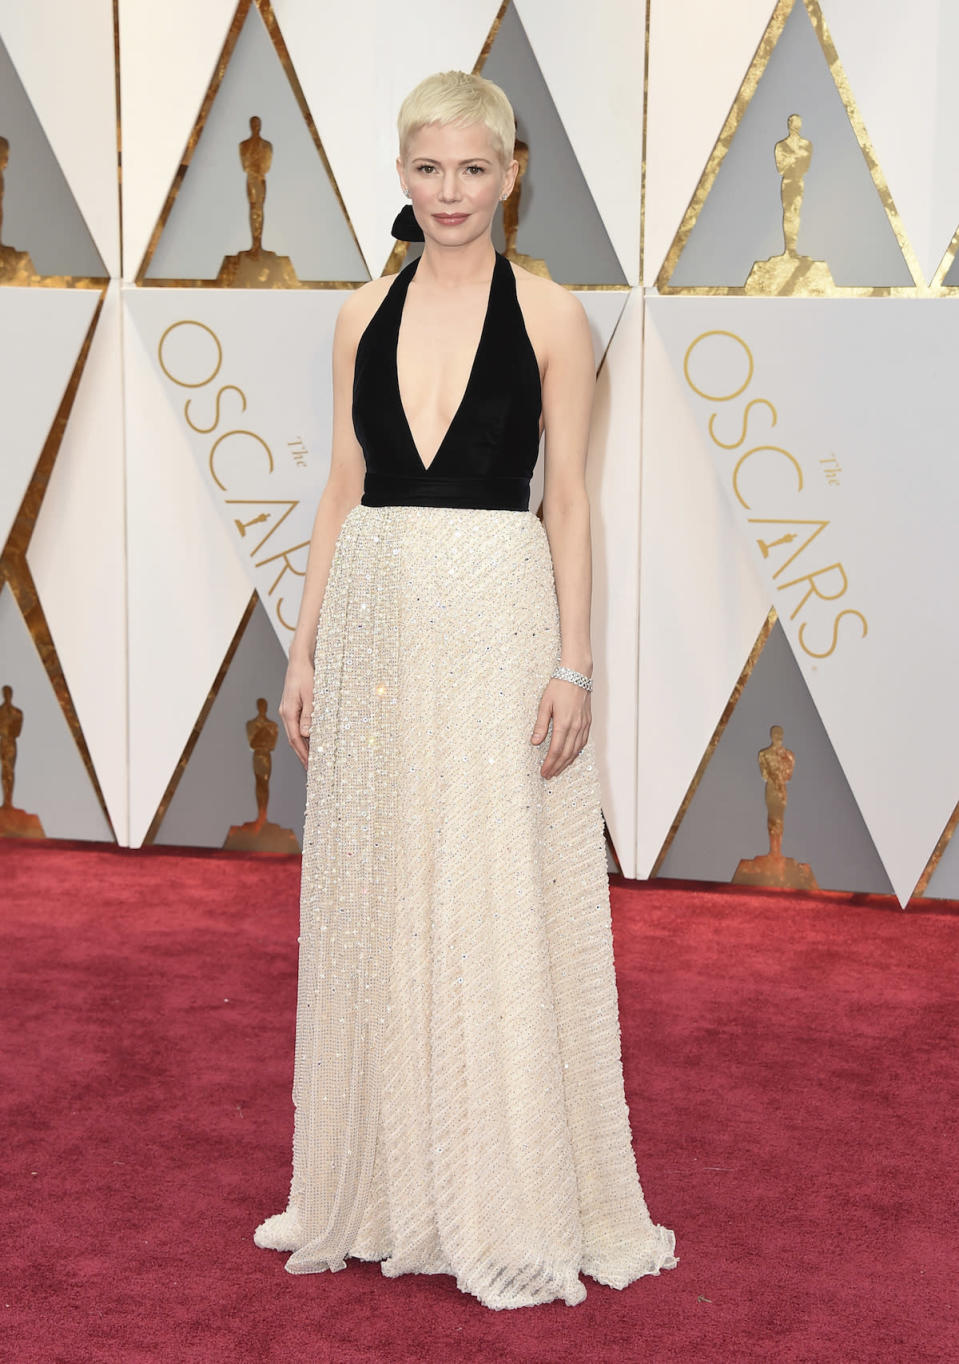 <p>Michelle Williams usually stands out on the red carpet in a bright color or interesting design. Yet for the 2017 Oscars, she didn't do either, instead choosing a subtle black and white halter gown from Louis Vuitton. <em>(Photo: Getty Images)</em> </p>